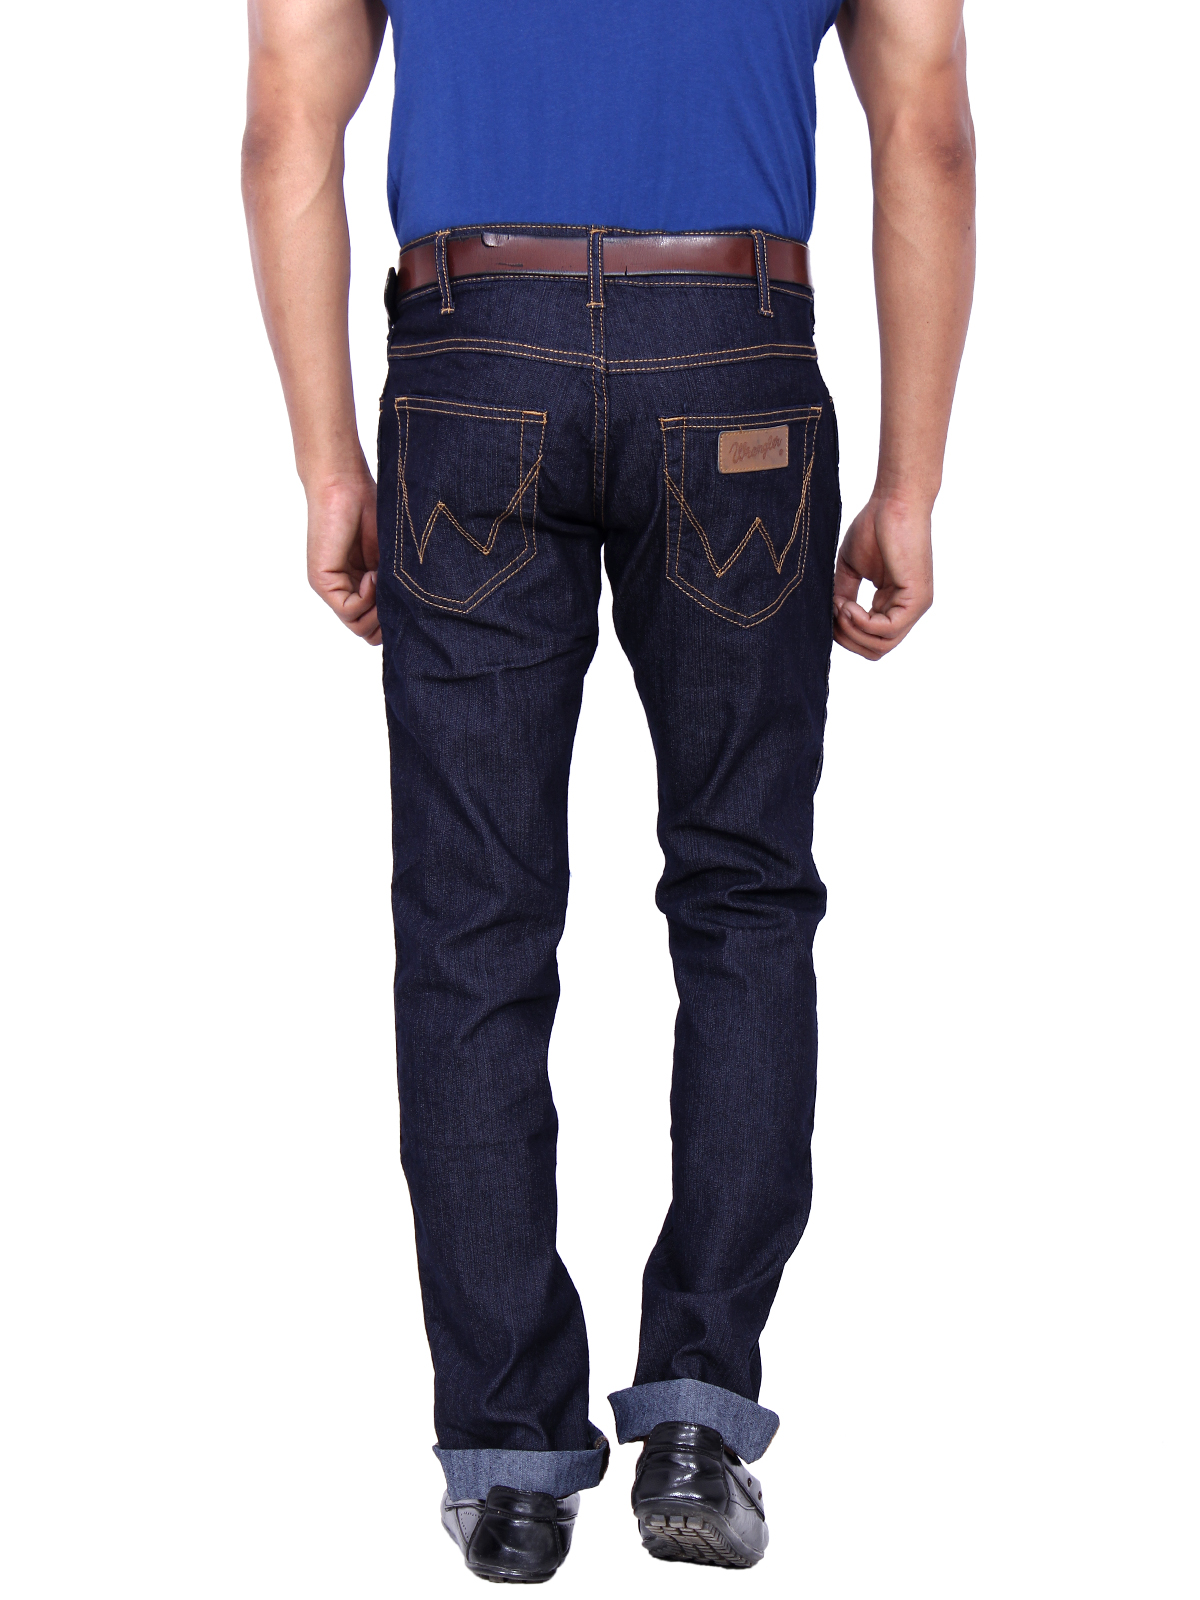 wrangler jeans fit guide india